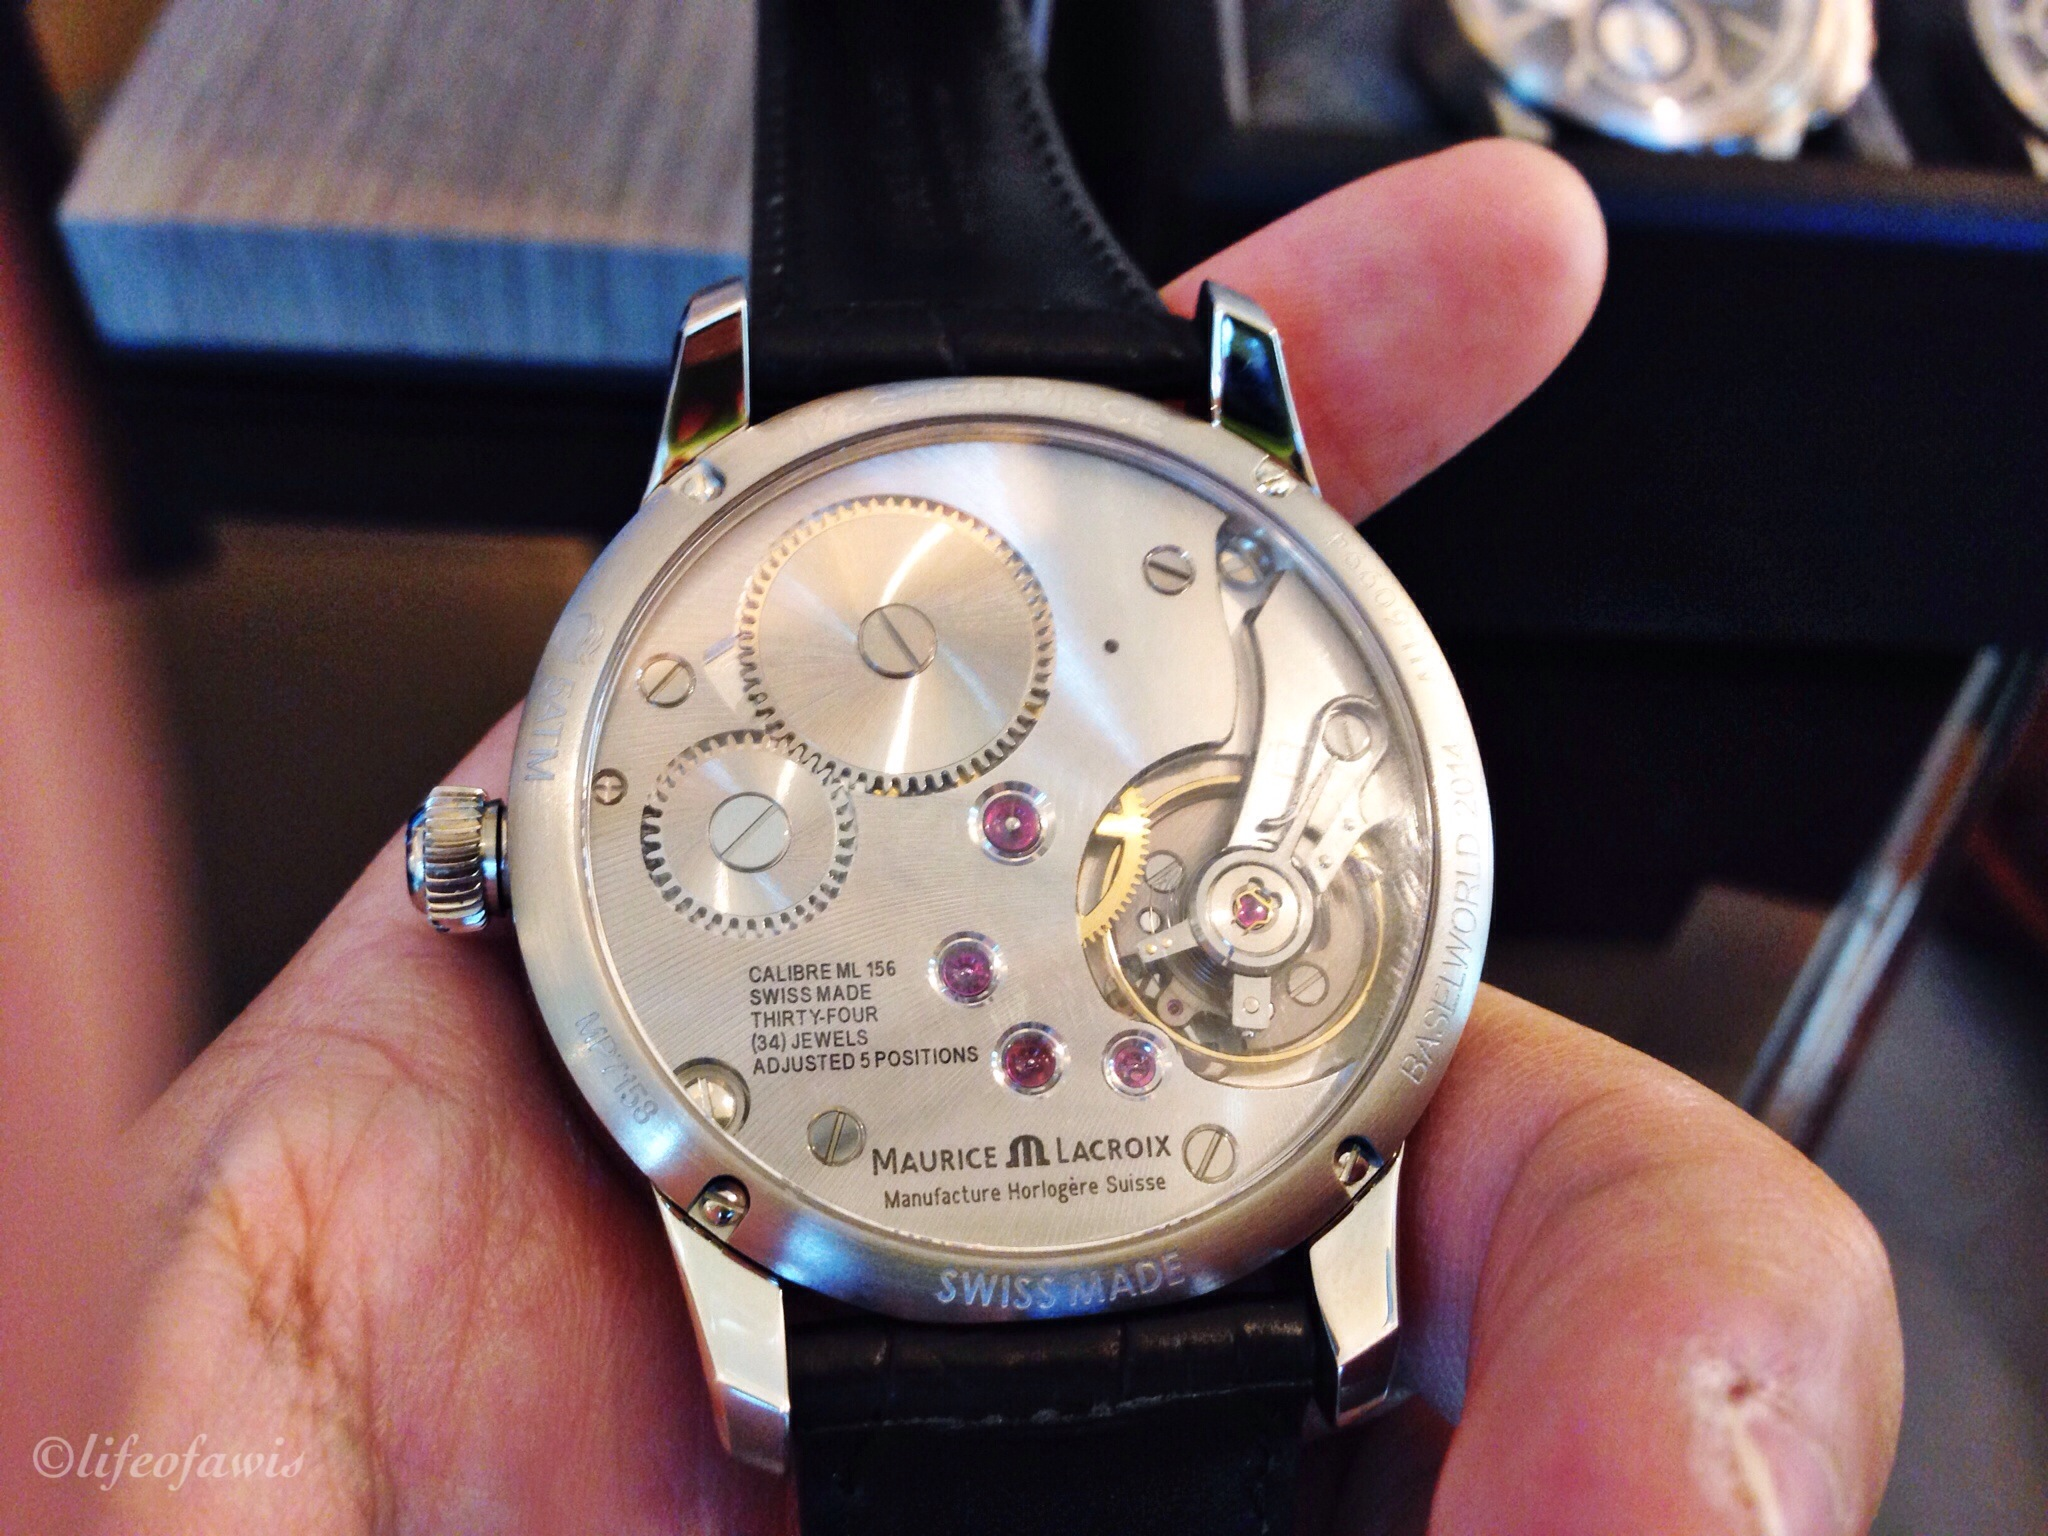 Beautifully designed and crafted  manufacture  movements.